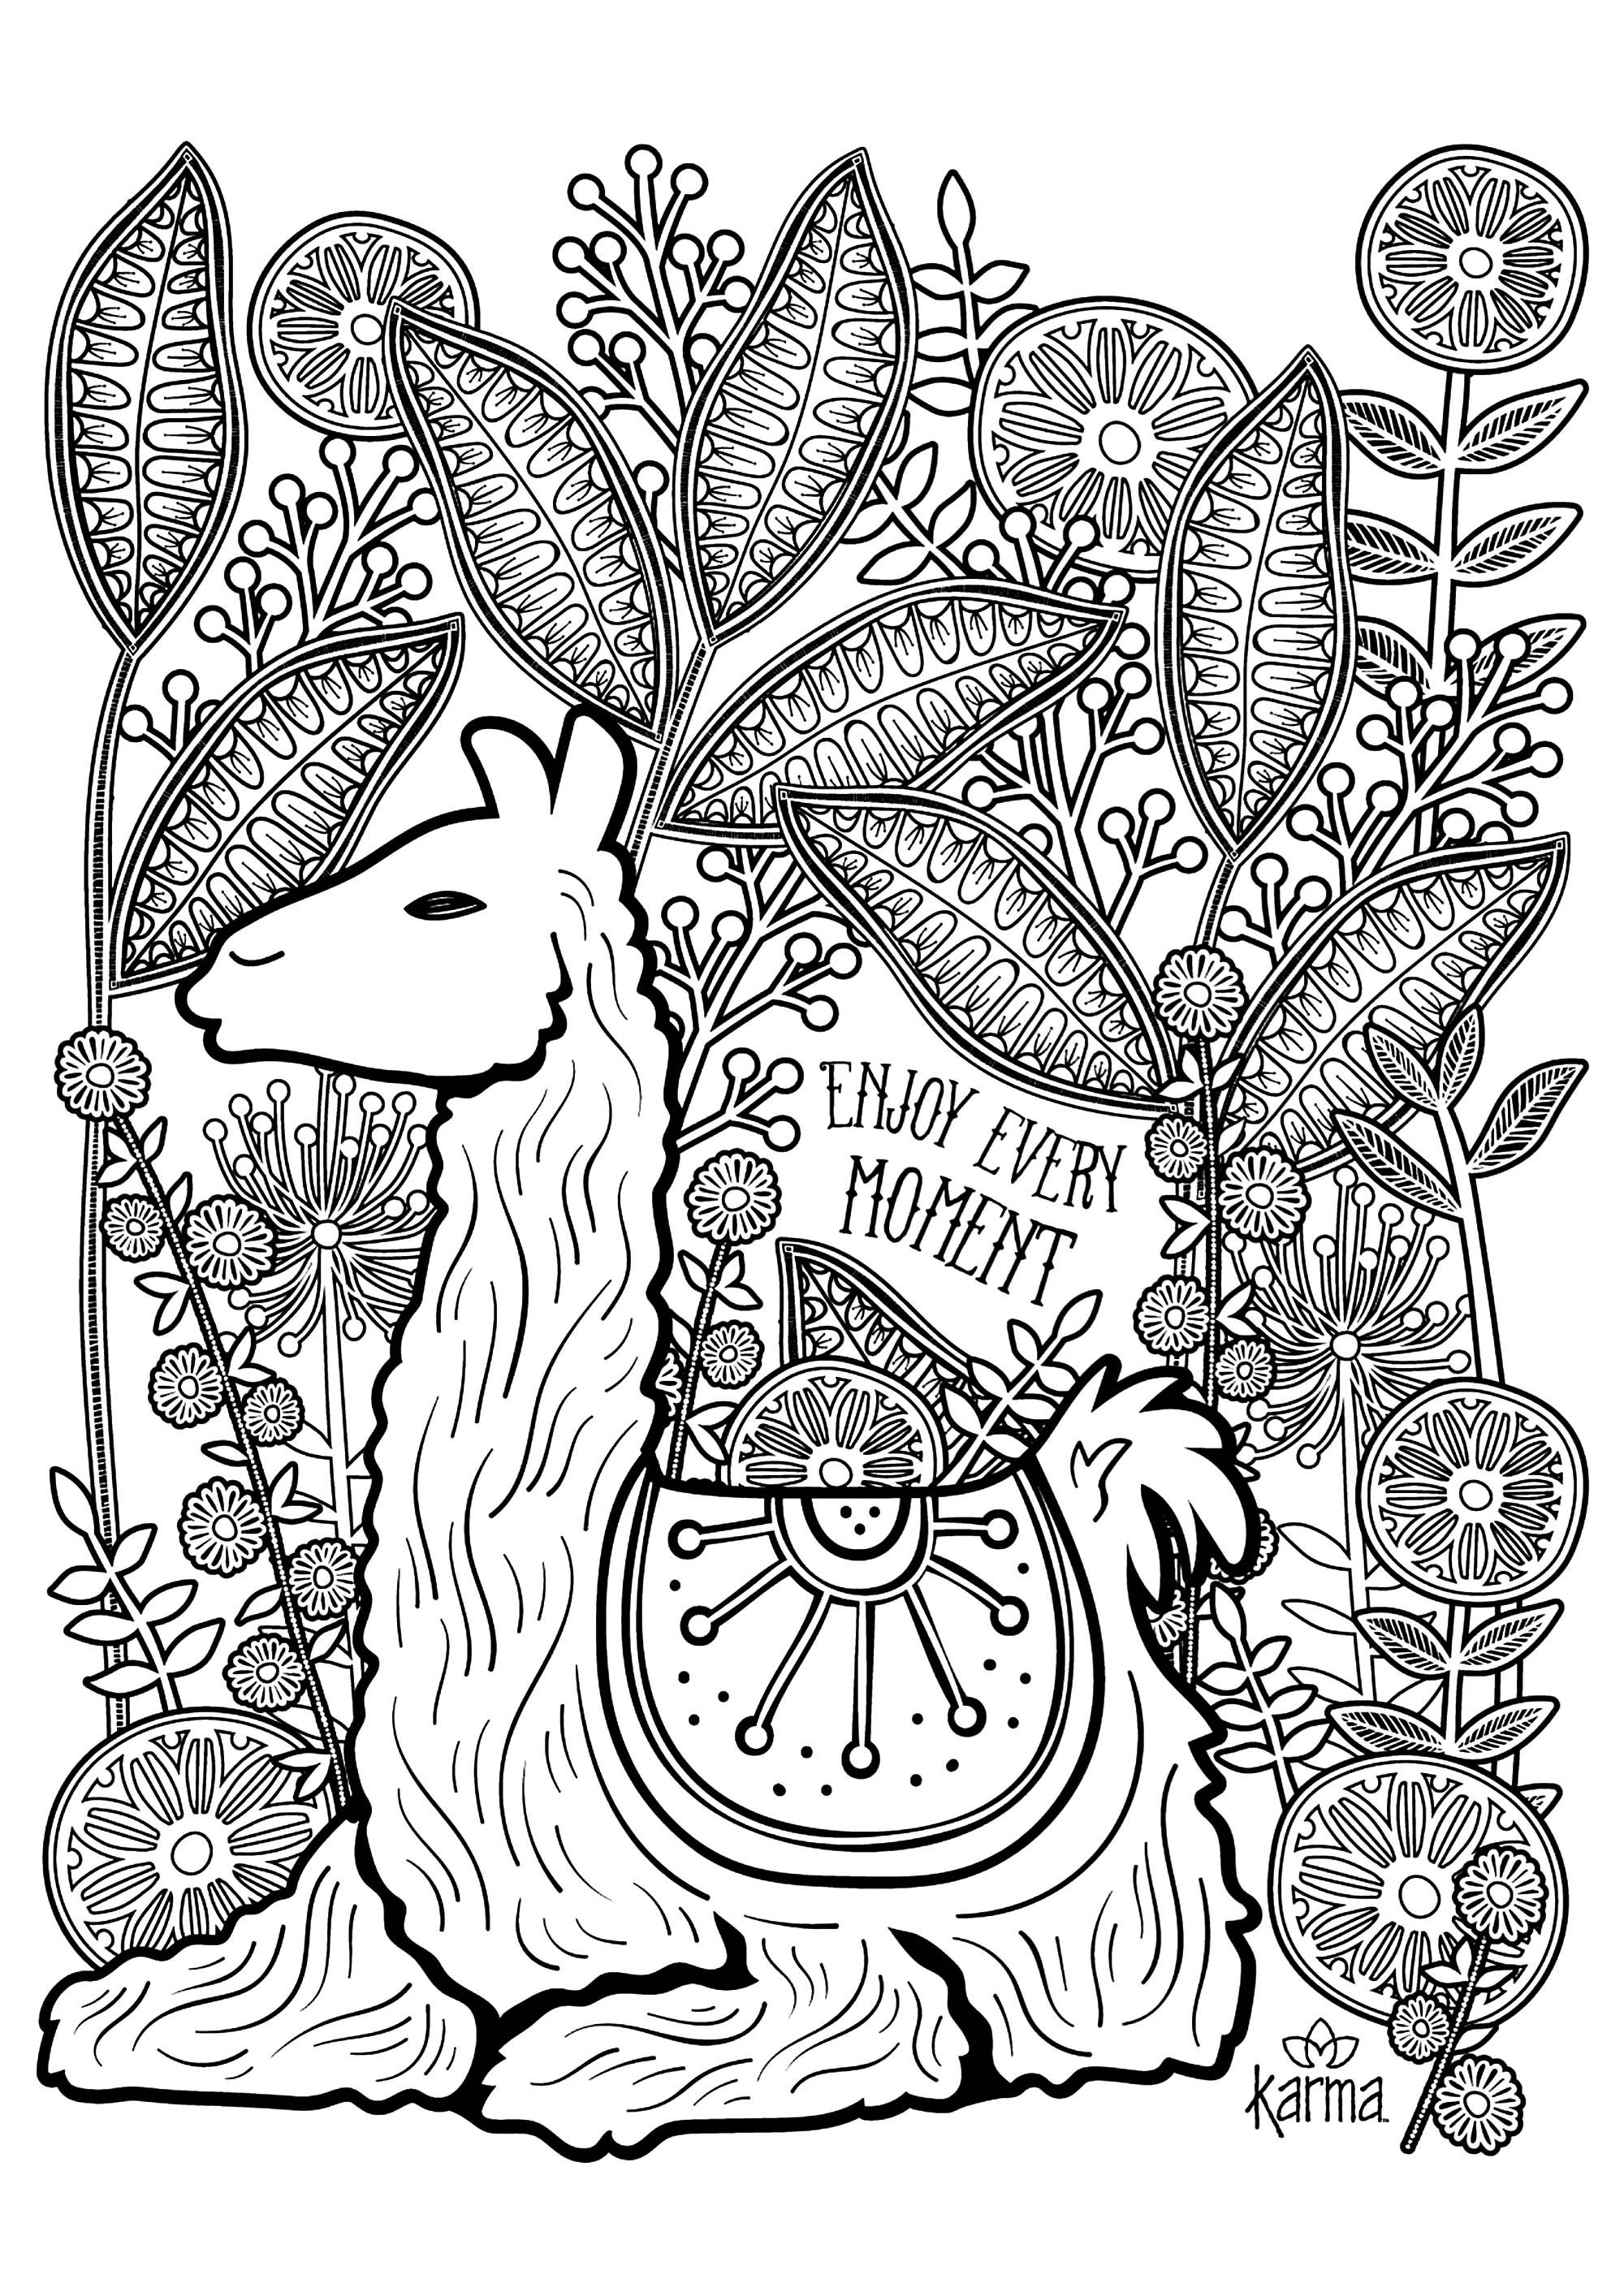 Llama Enjoy Every Moment Llama To Color With The Text Enjoy Every Moment From The Galle Coloring Pages Kids Printable Coloring Pages Bird Coloring Pages